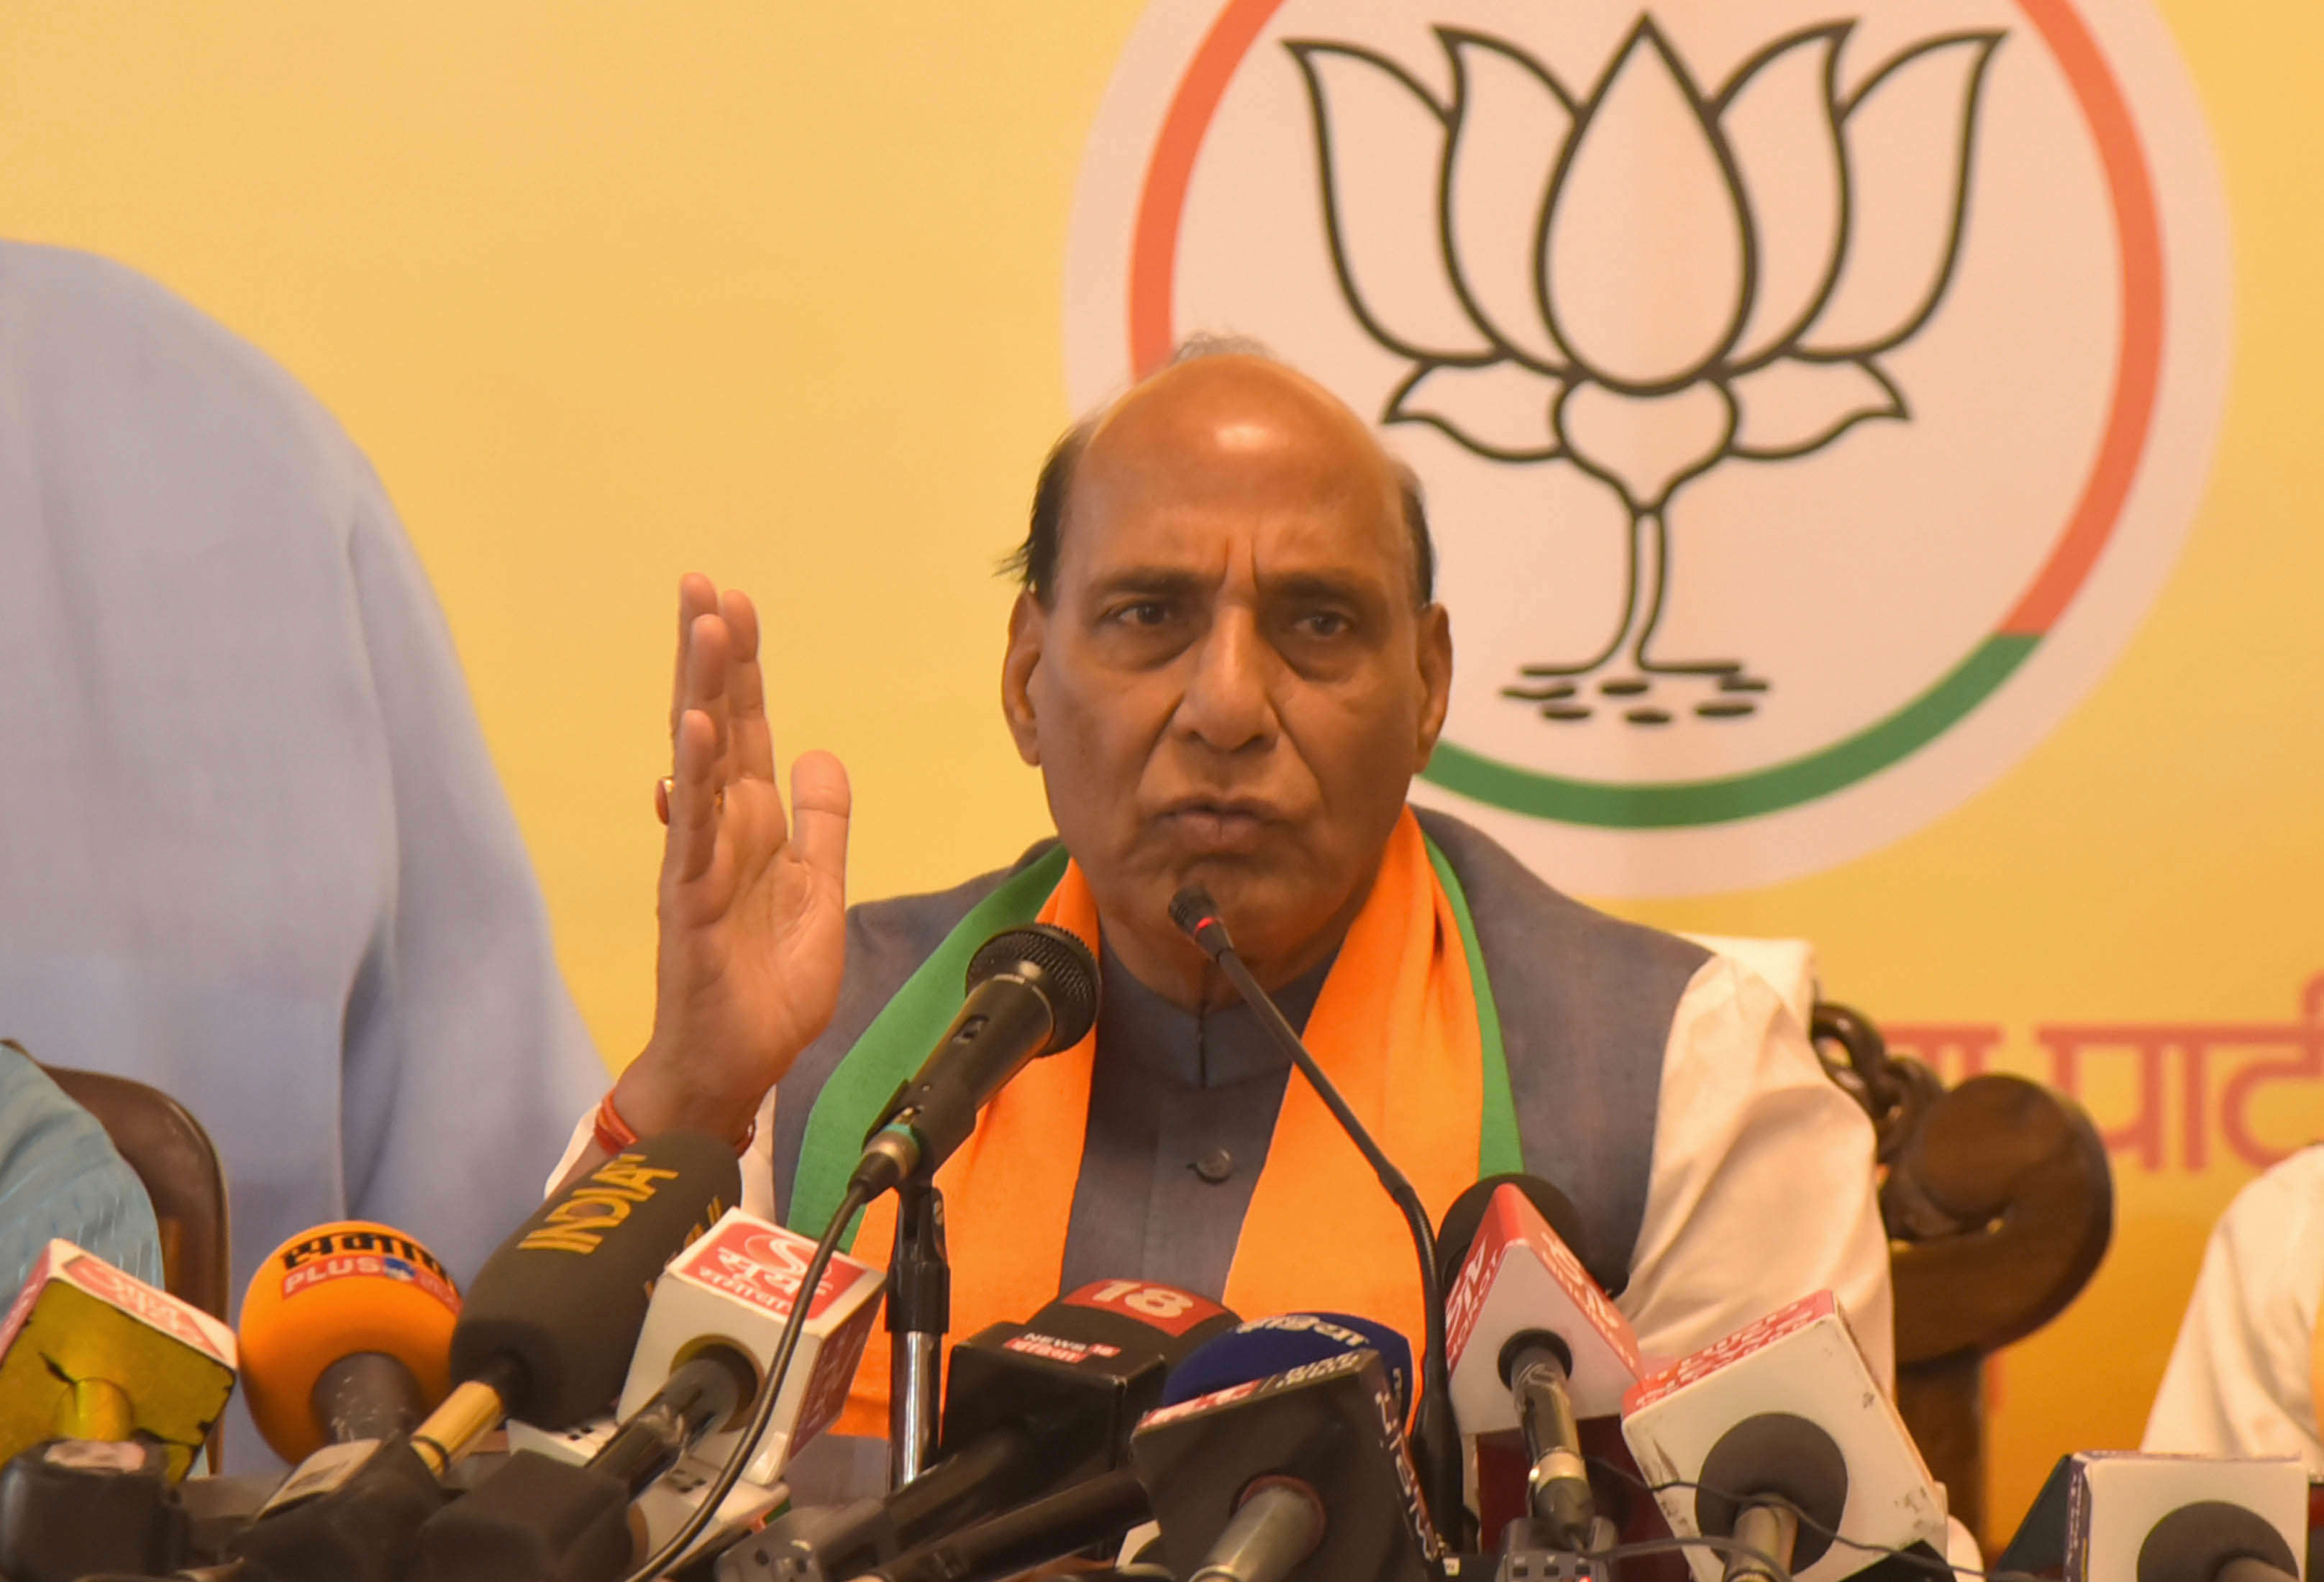 Slide 27 of 31: CAPTION: JAIPUR, INDIA - APRIL 22: Union Home Minister and senior BJP leader Rajnath Singh speaks to media during a press conference, on April 22, 2019 in Jaipur, India. Rajnath Singh said that Congress had made several promises but did not fulfil them and they should take lessons how to reduce poverty. Talking about the Balakot airstrike, he said India is not a weak country but a few people are questioning the number of terrorists killed in the February 27 airstrike. (Photo by Prabhakar Sharma/Hindustan Times via Getty Images)